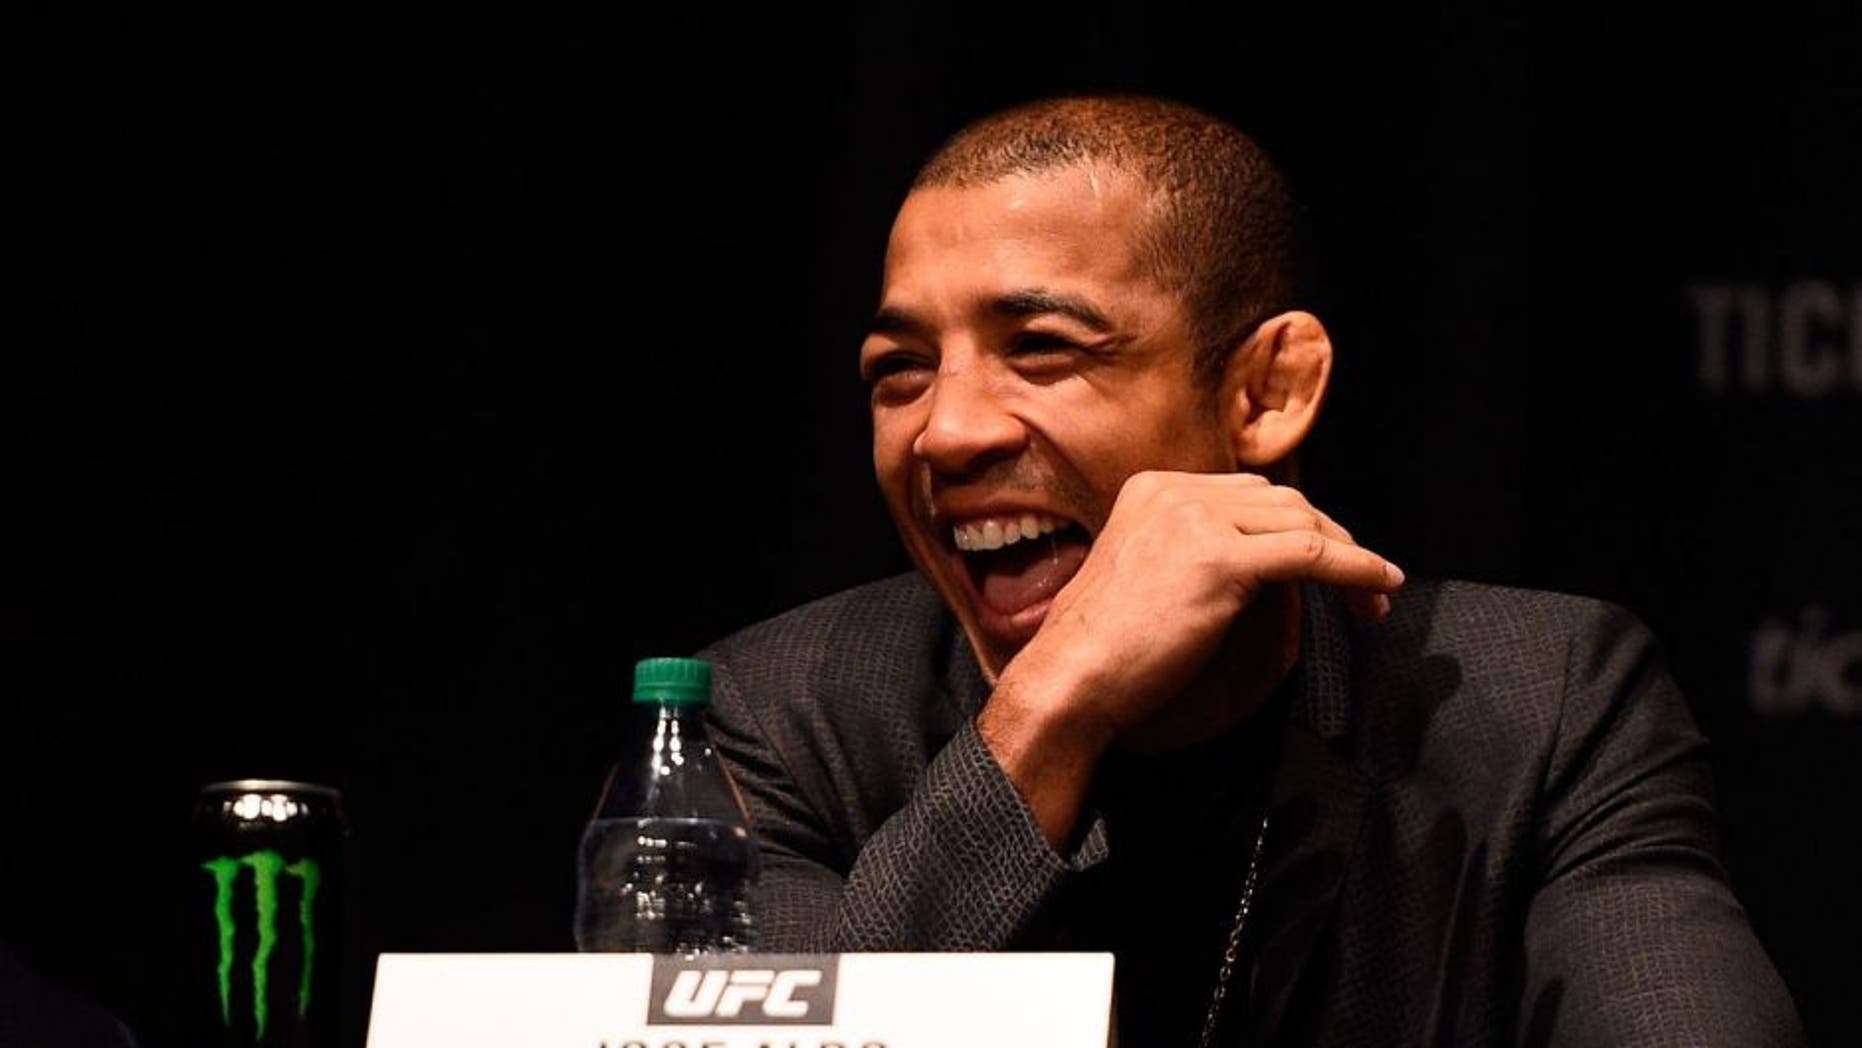 NEW YORK, NY - APRIL 27: Jose Aldo of Brazil interacts with fans and media during the UFC 200 New York press event at Madison Square Garden on April 27, 2016 in New York City. (Photo by Jeff Bottari/Zuffa LLC/Zuffa LLC via Getty Images)